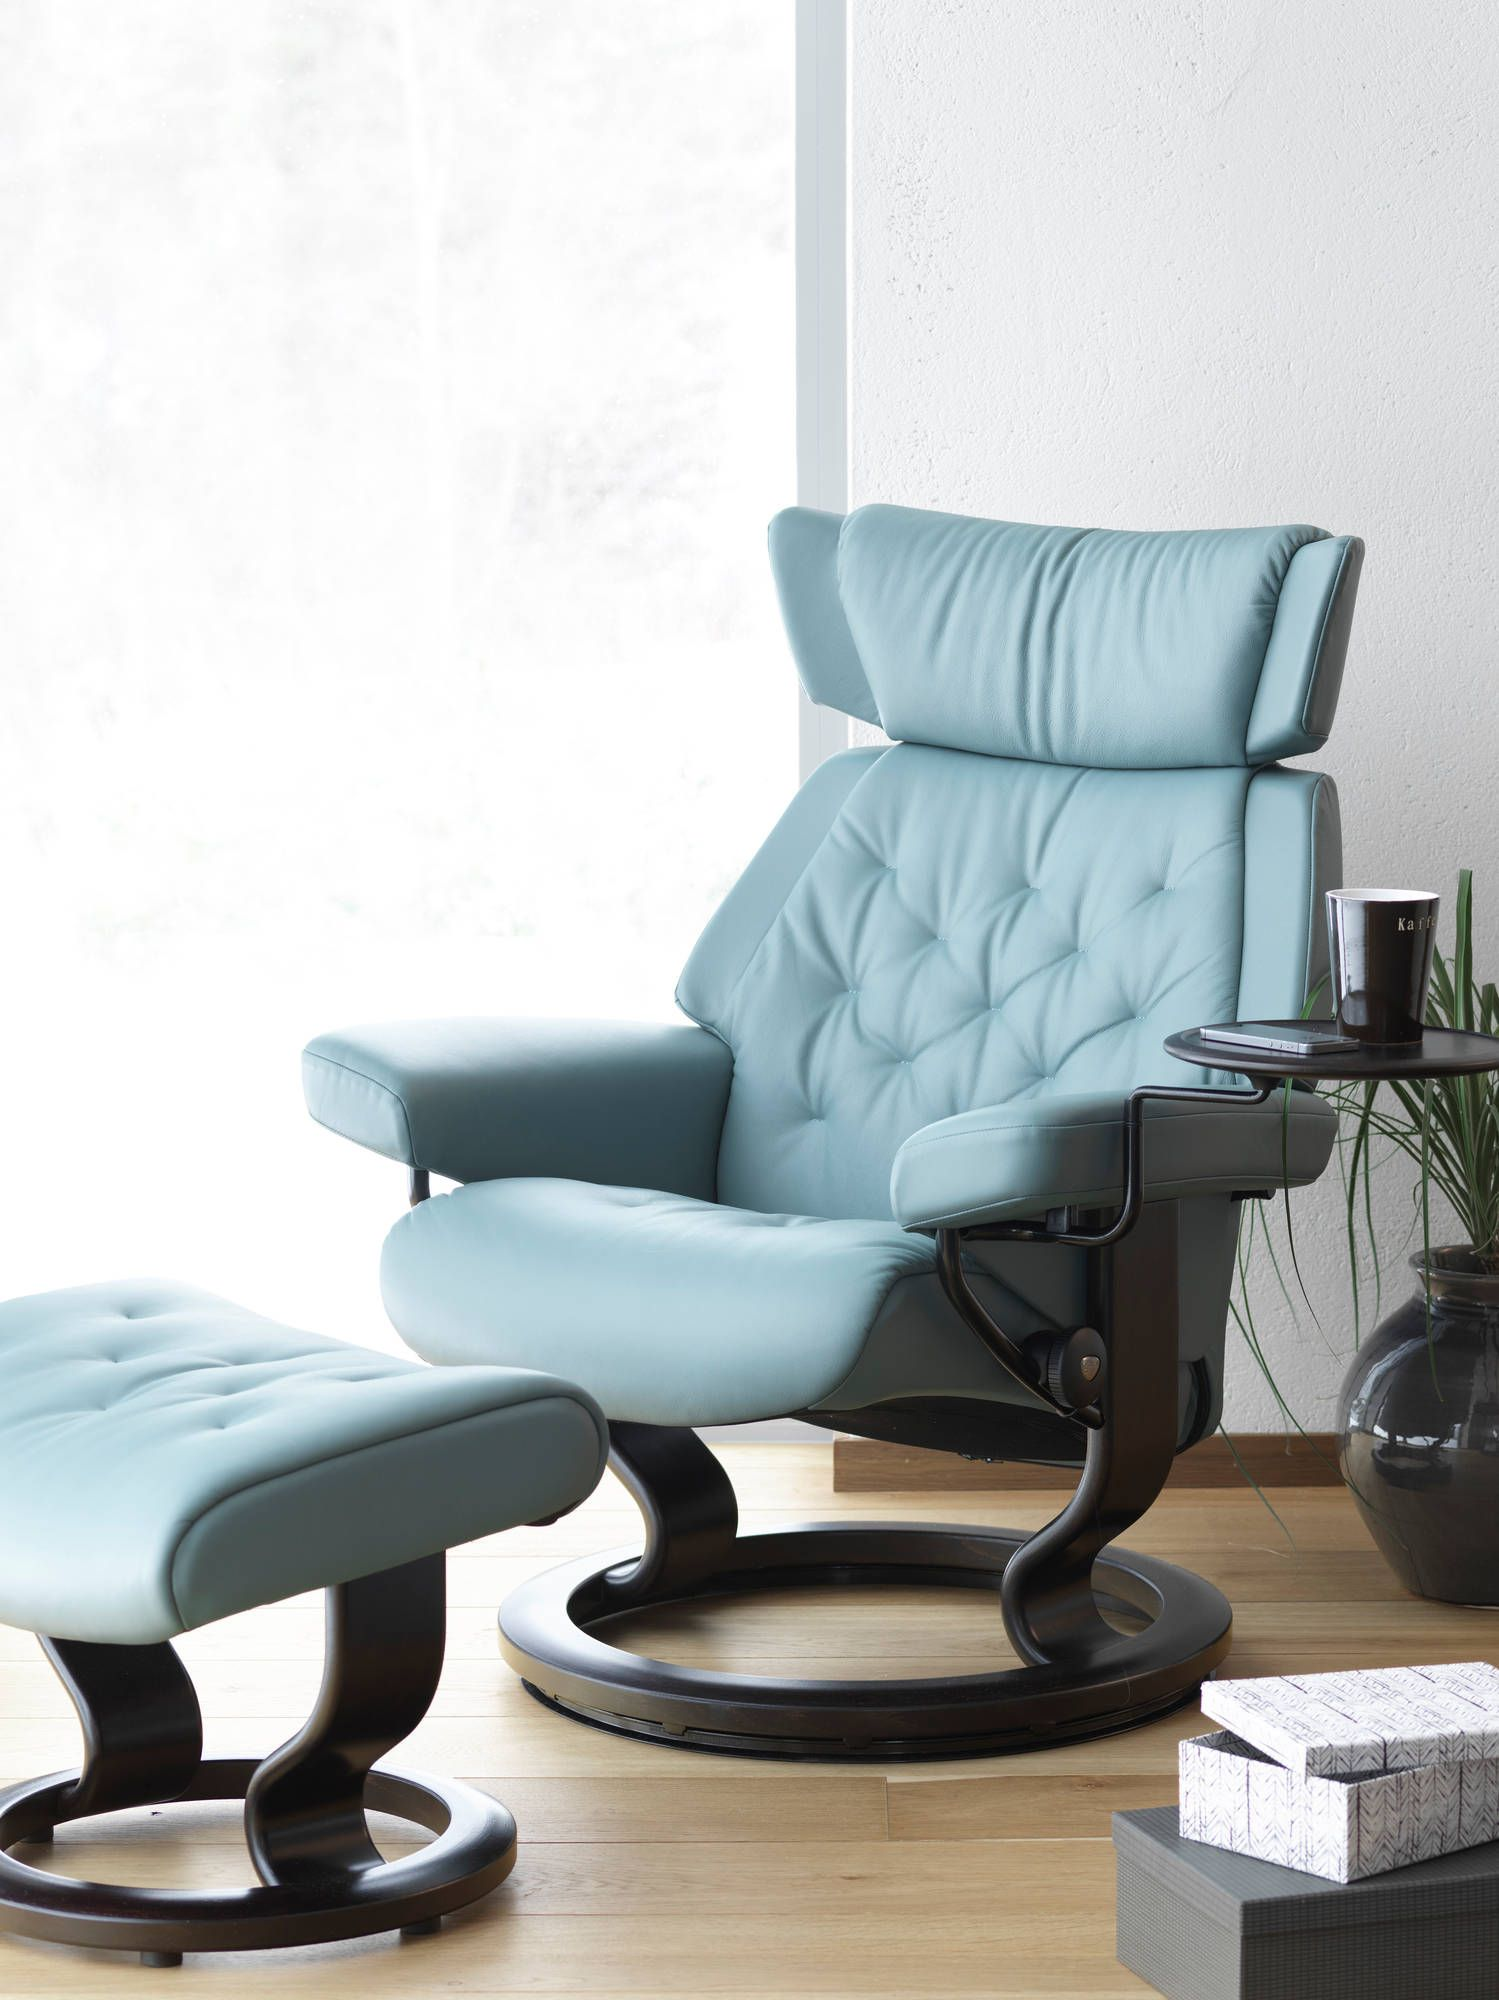 stressless skyline recliner in paloma leather (color: aqua green